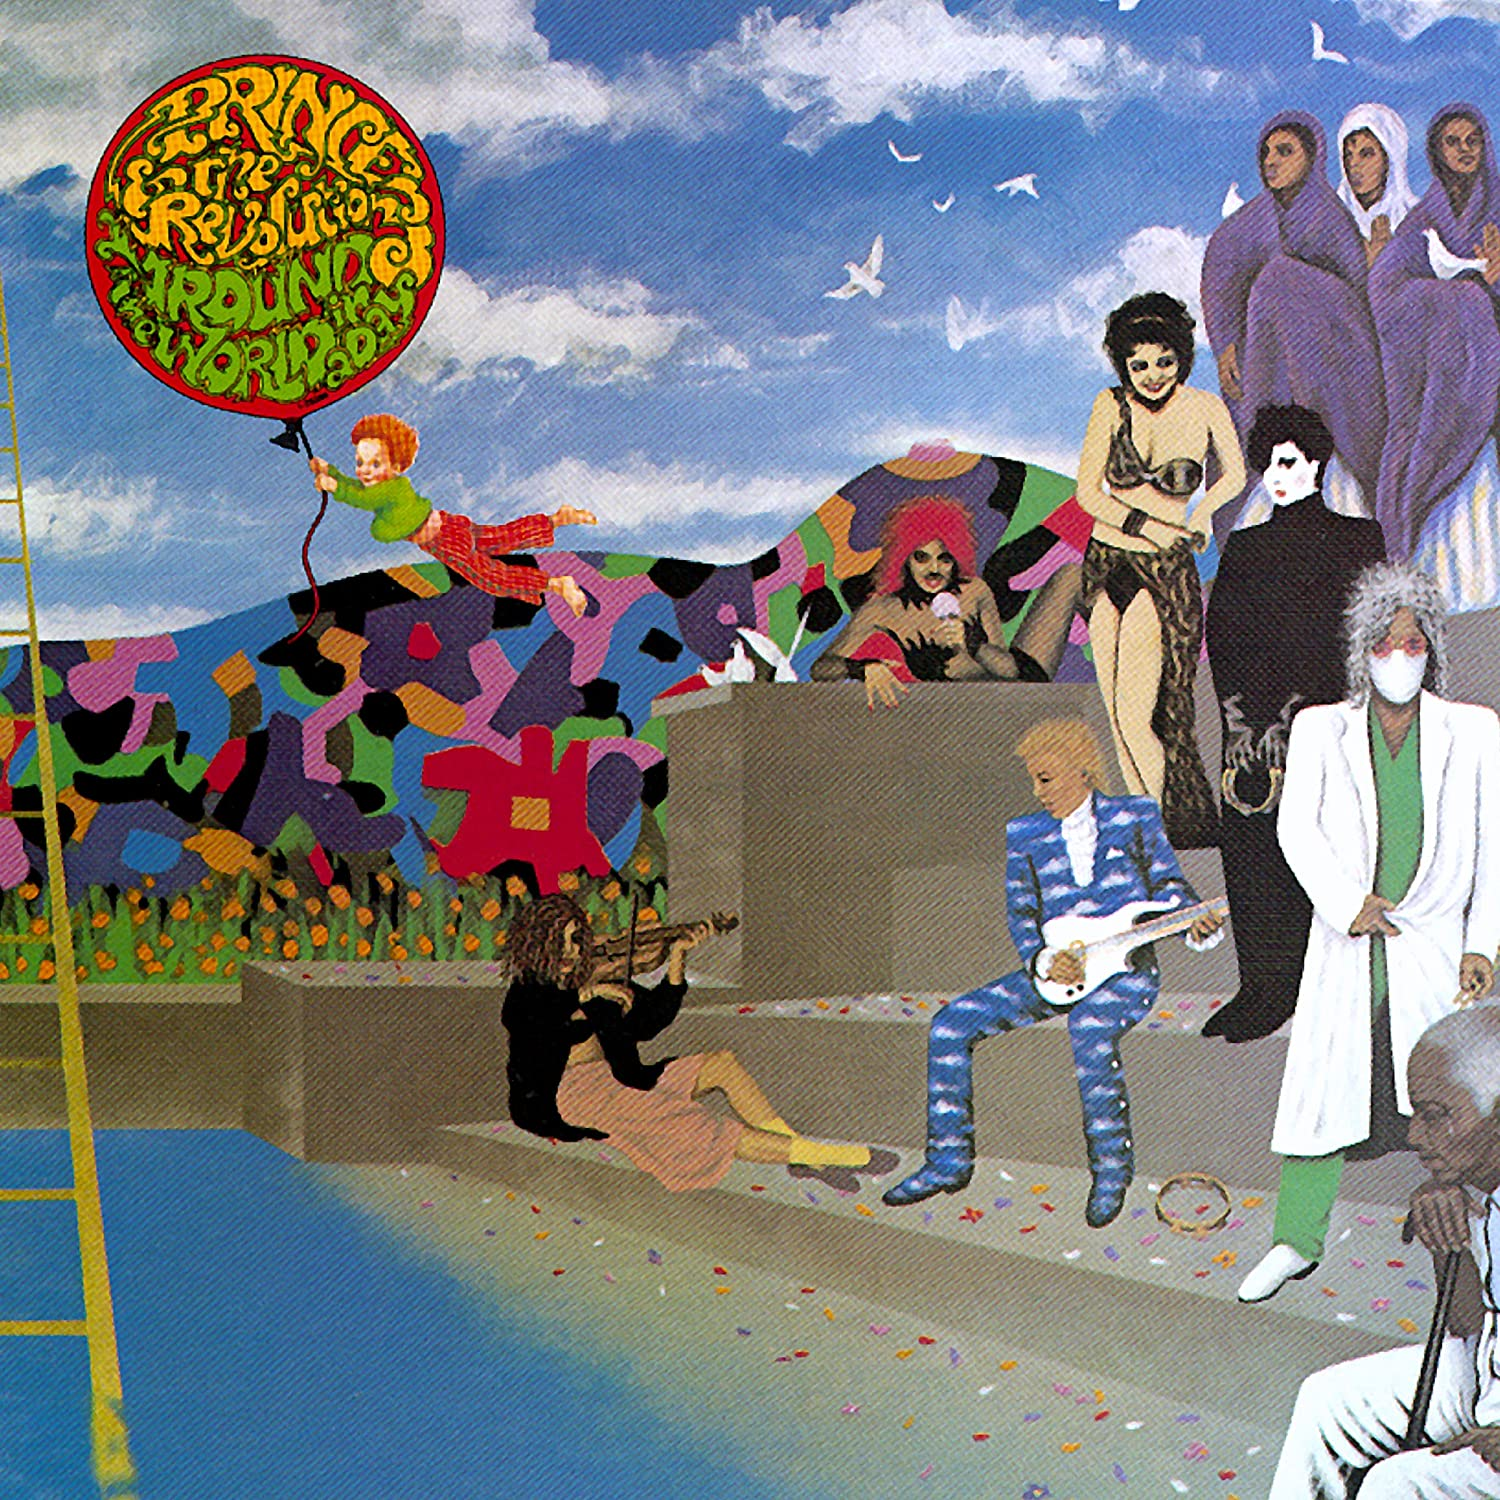 amazon around the world in a day prince クラシックソウル 音楽